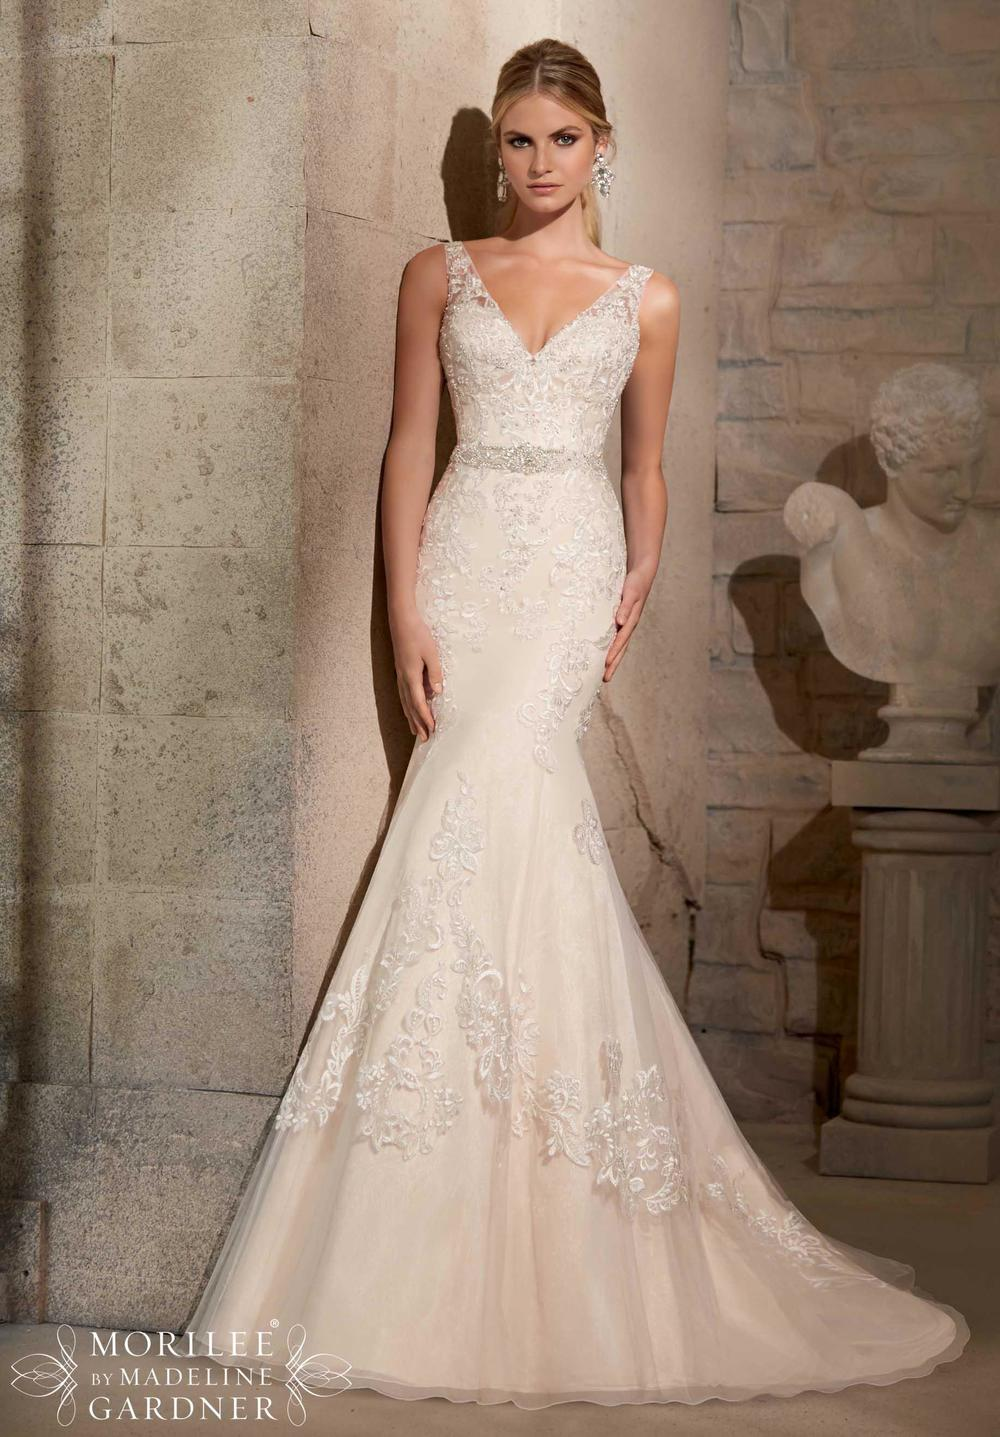 Top 5 designer wedding gowns by mori lee bridal fashion fraire nbspnbspnbspnbsp ombrellifo Image collections